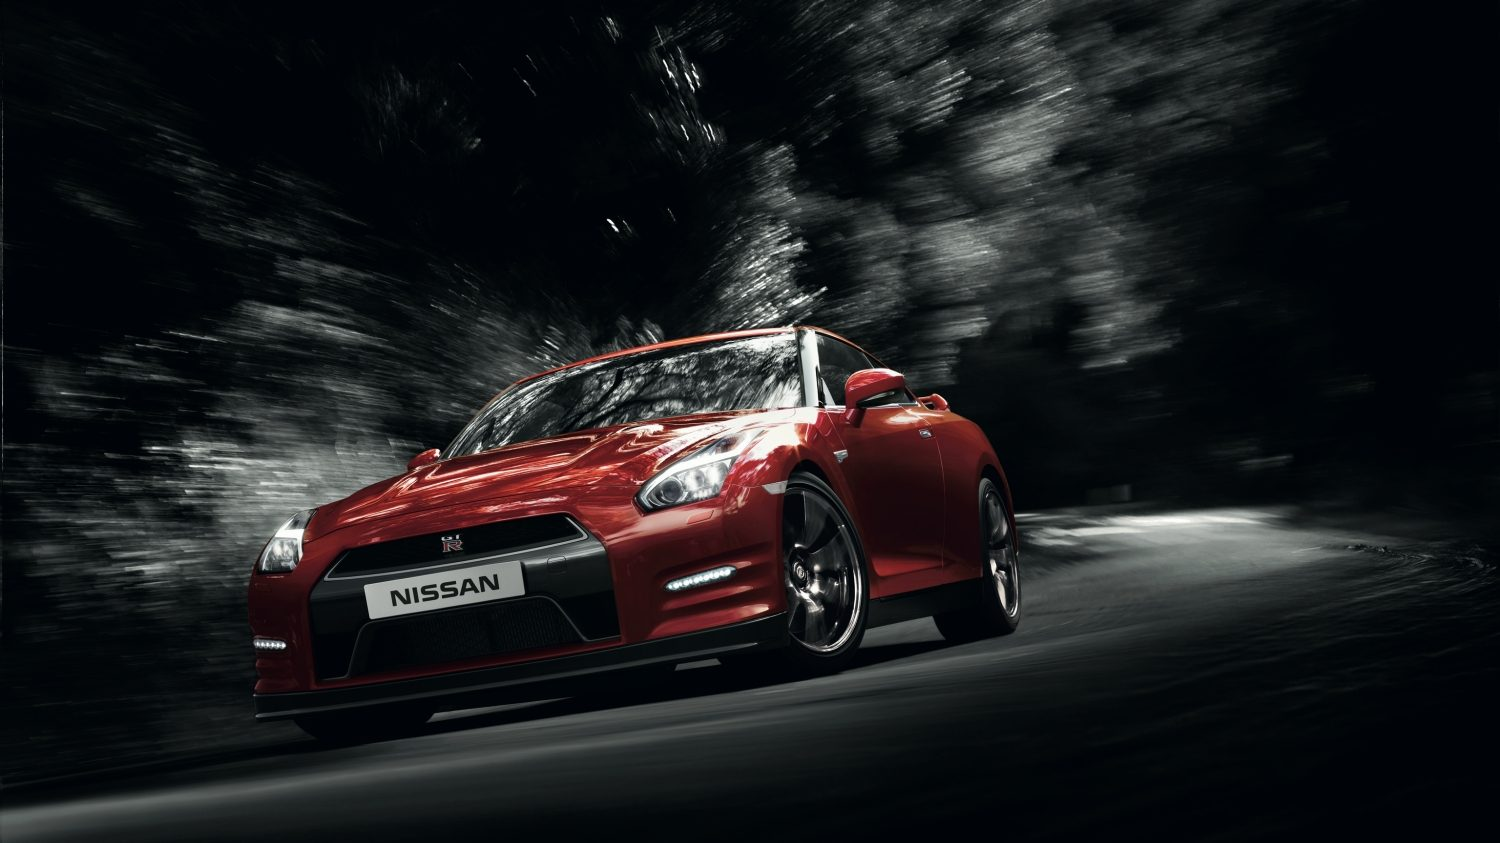 Nissan GT-R red - Car on dark road